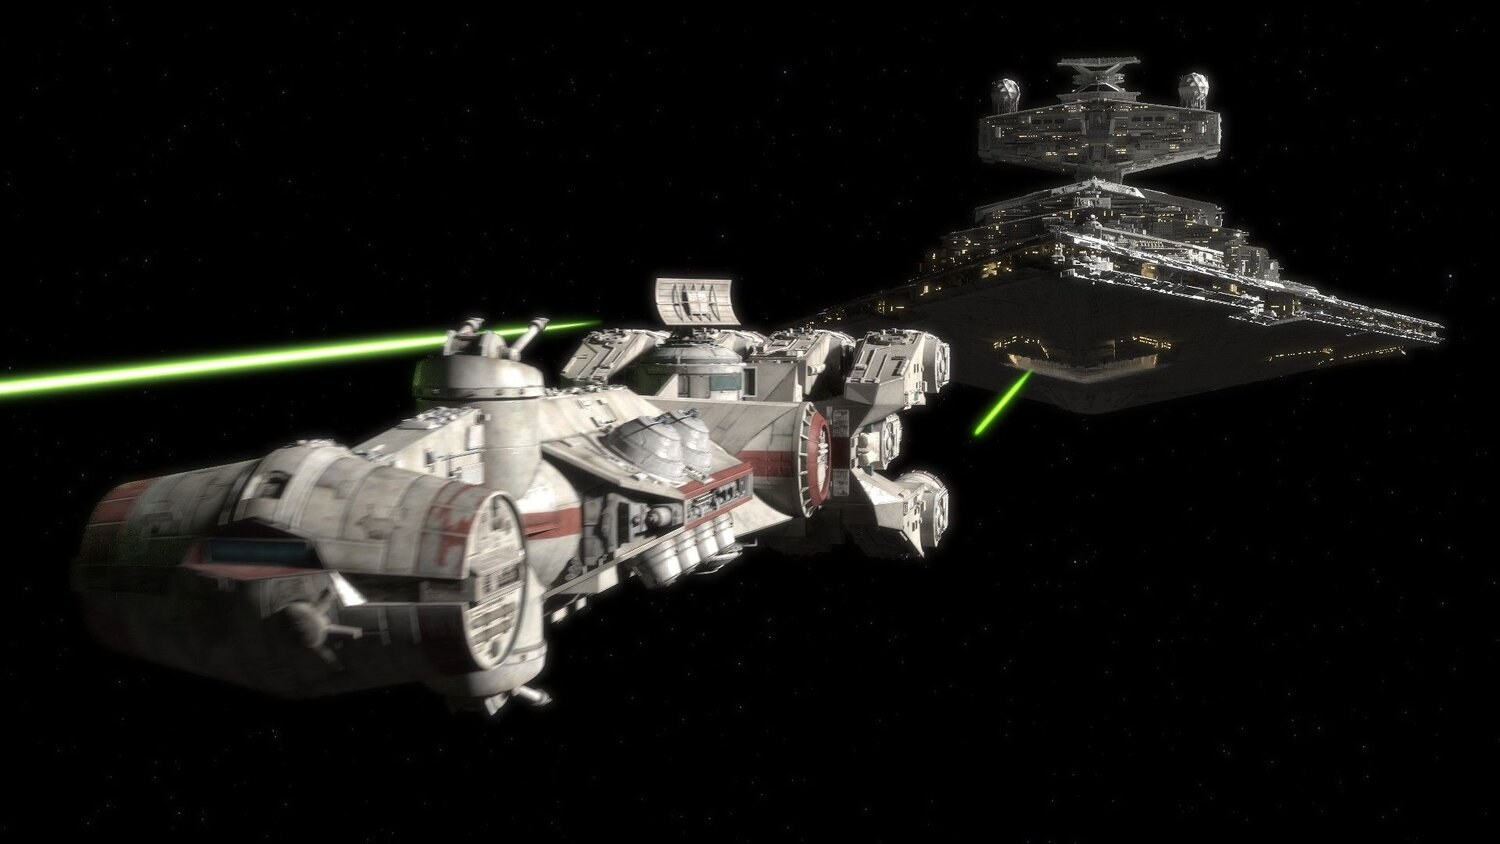 Here S Why The Cr90 Is The Most Important Starship In Star Wars Motordiction